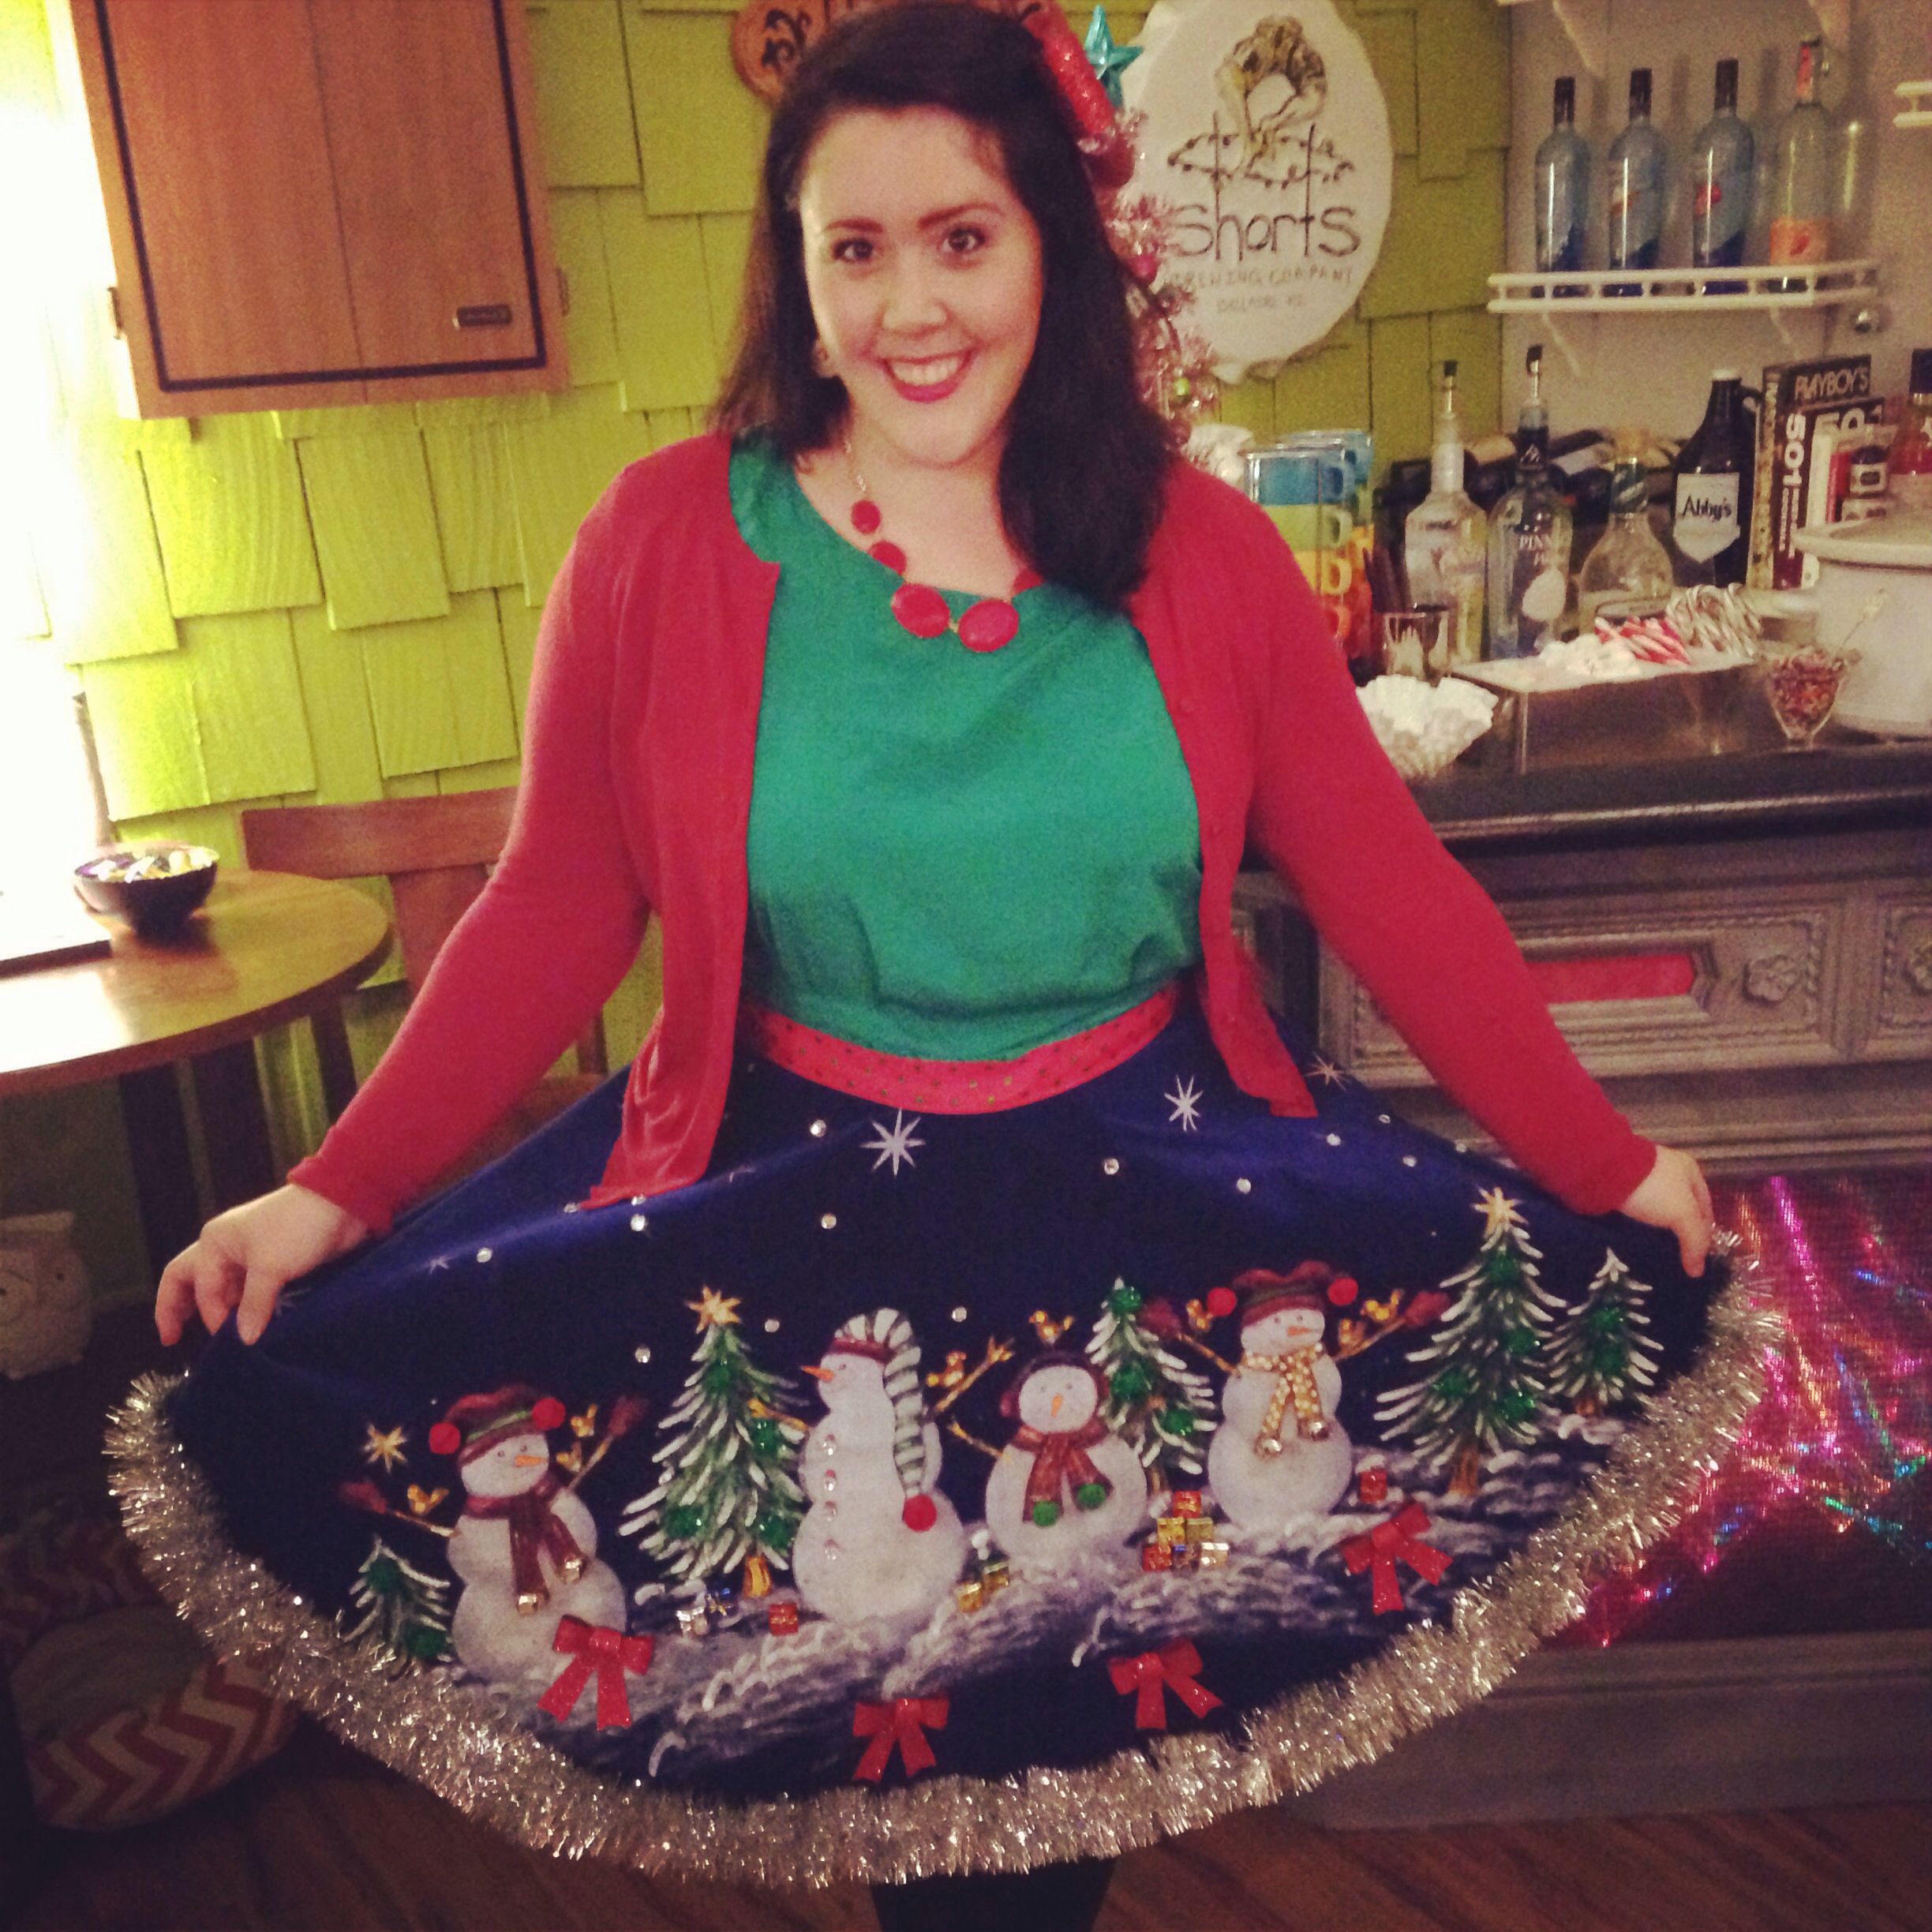 Tree Skirt Instead Of Tacky Christmas Sweater Diy Christmas Sweater Tacky Christmas Party Tacky Christmas Sweater